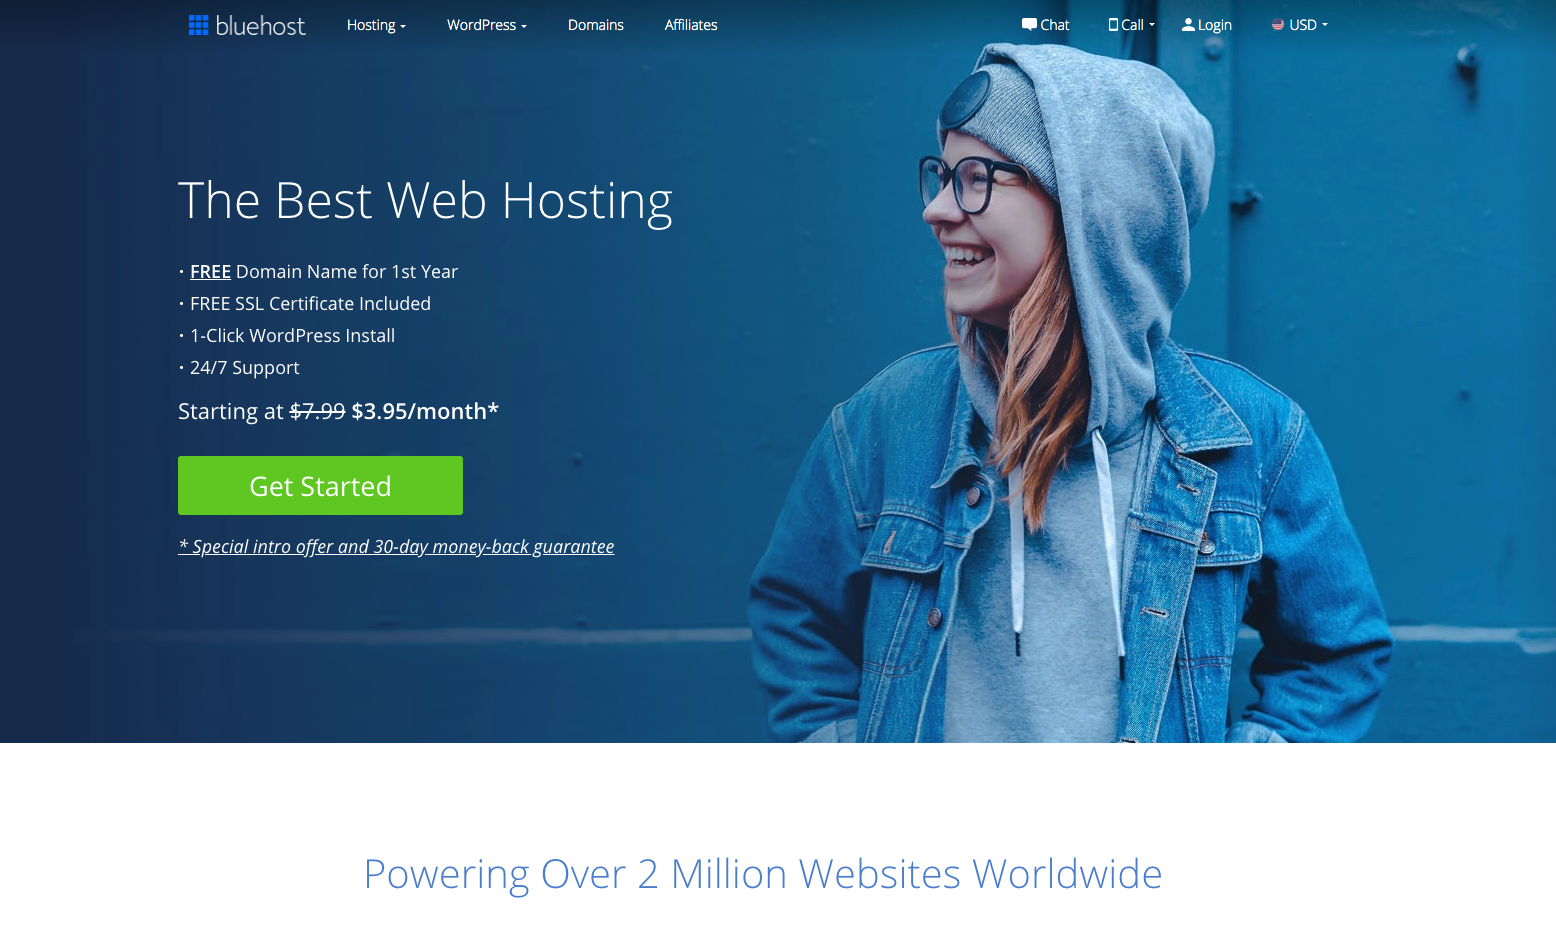 How to start a blog web hosting sign up process with Bluehost